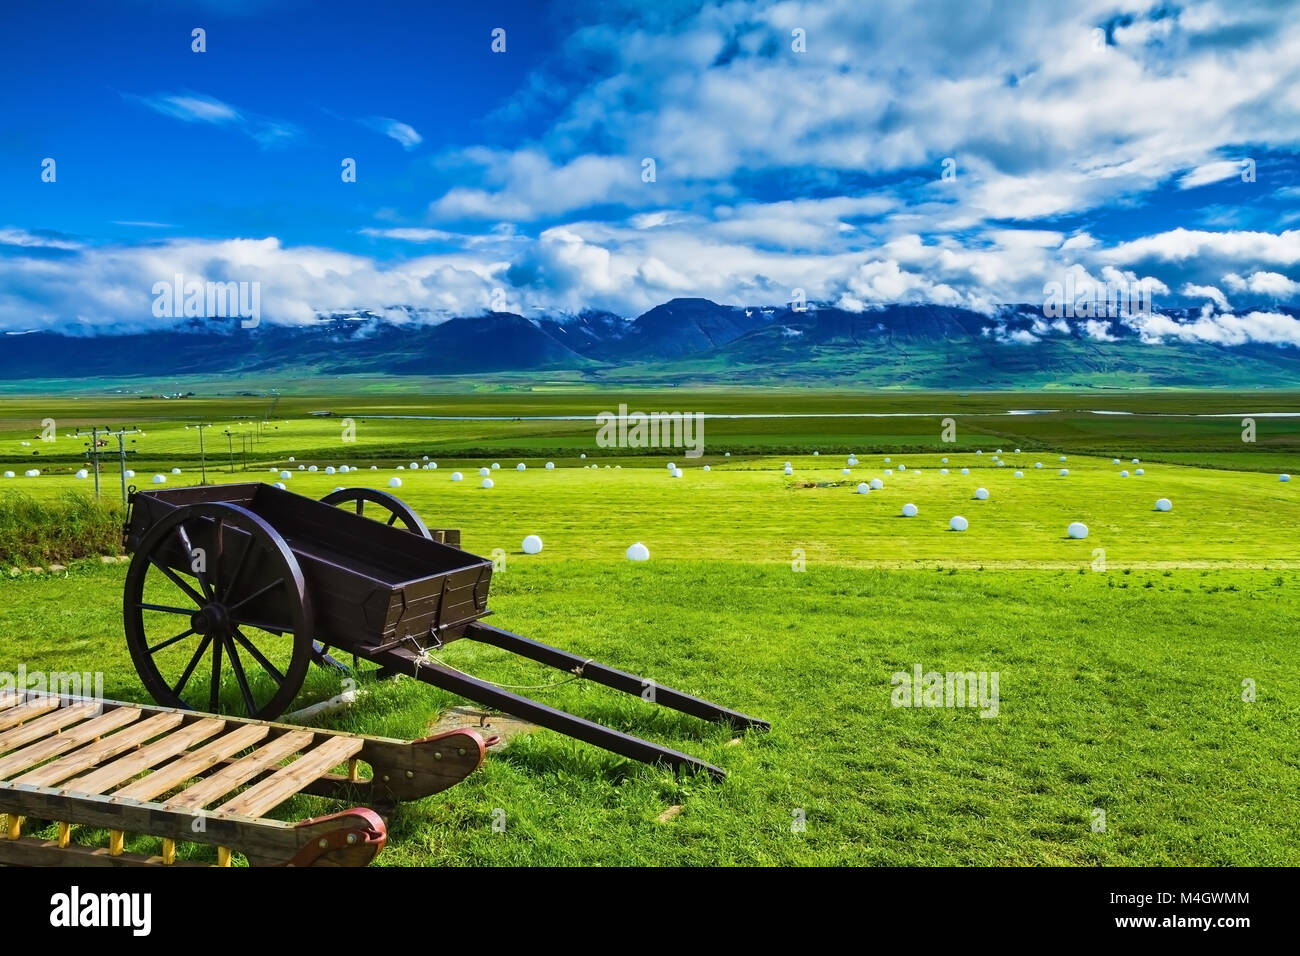 Old two-wheeled cart - Stock Image